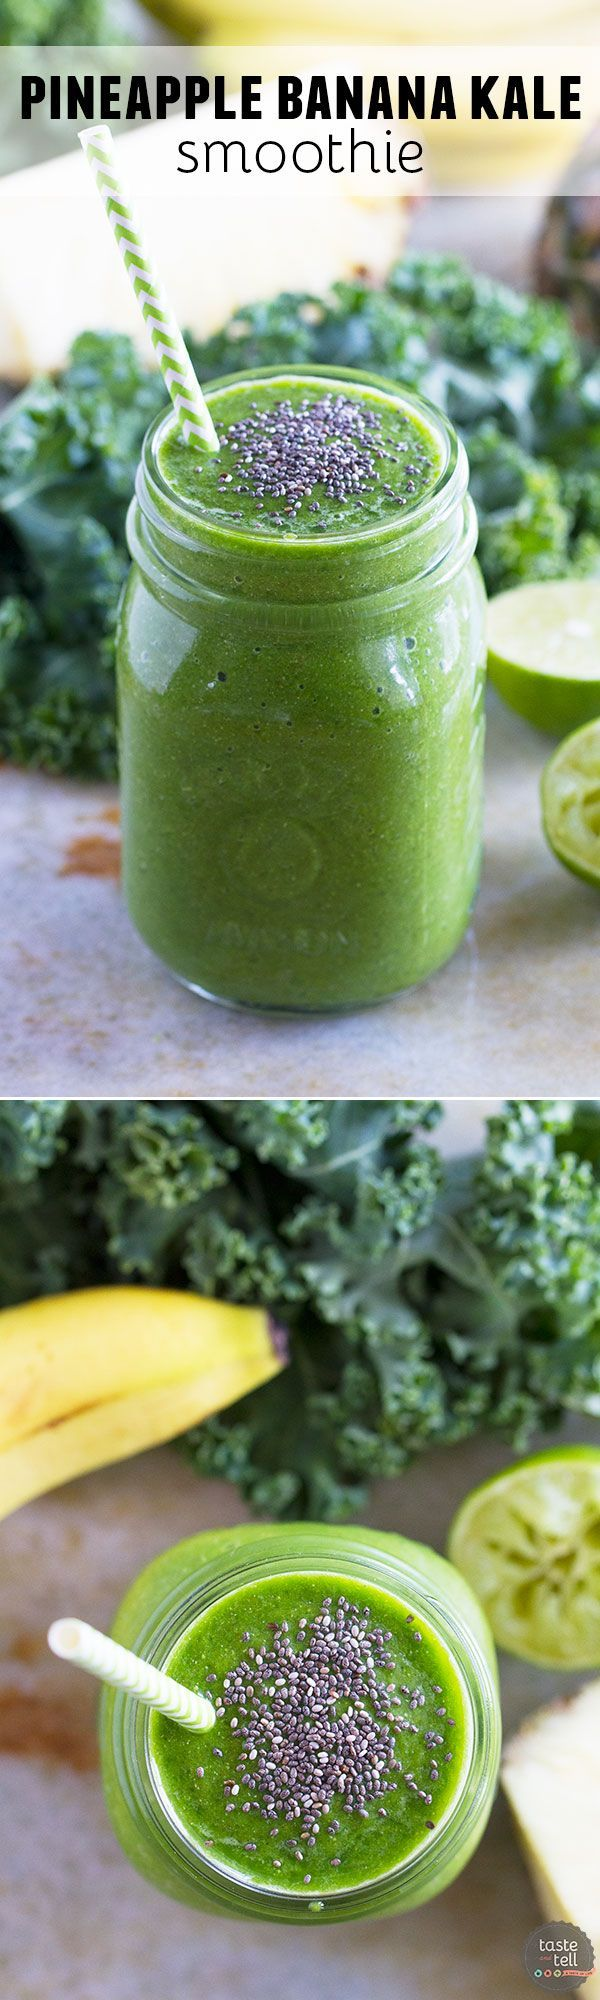 1 Banana. 2 cups Kale. 1/2 Lime, Juice of. 2 cups Pineapple. 2 tbsp Chia seeds. 2 cups Water.